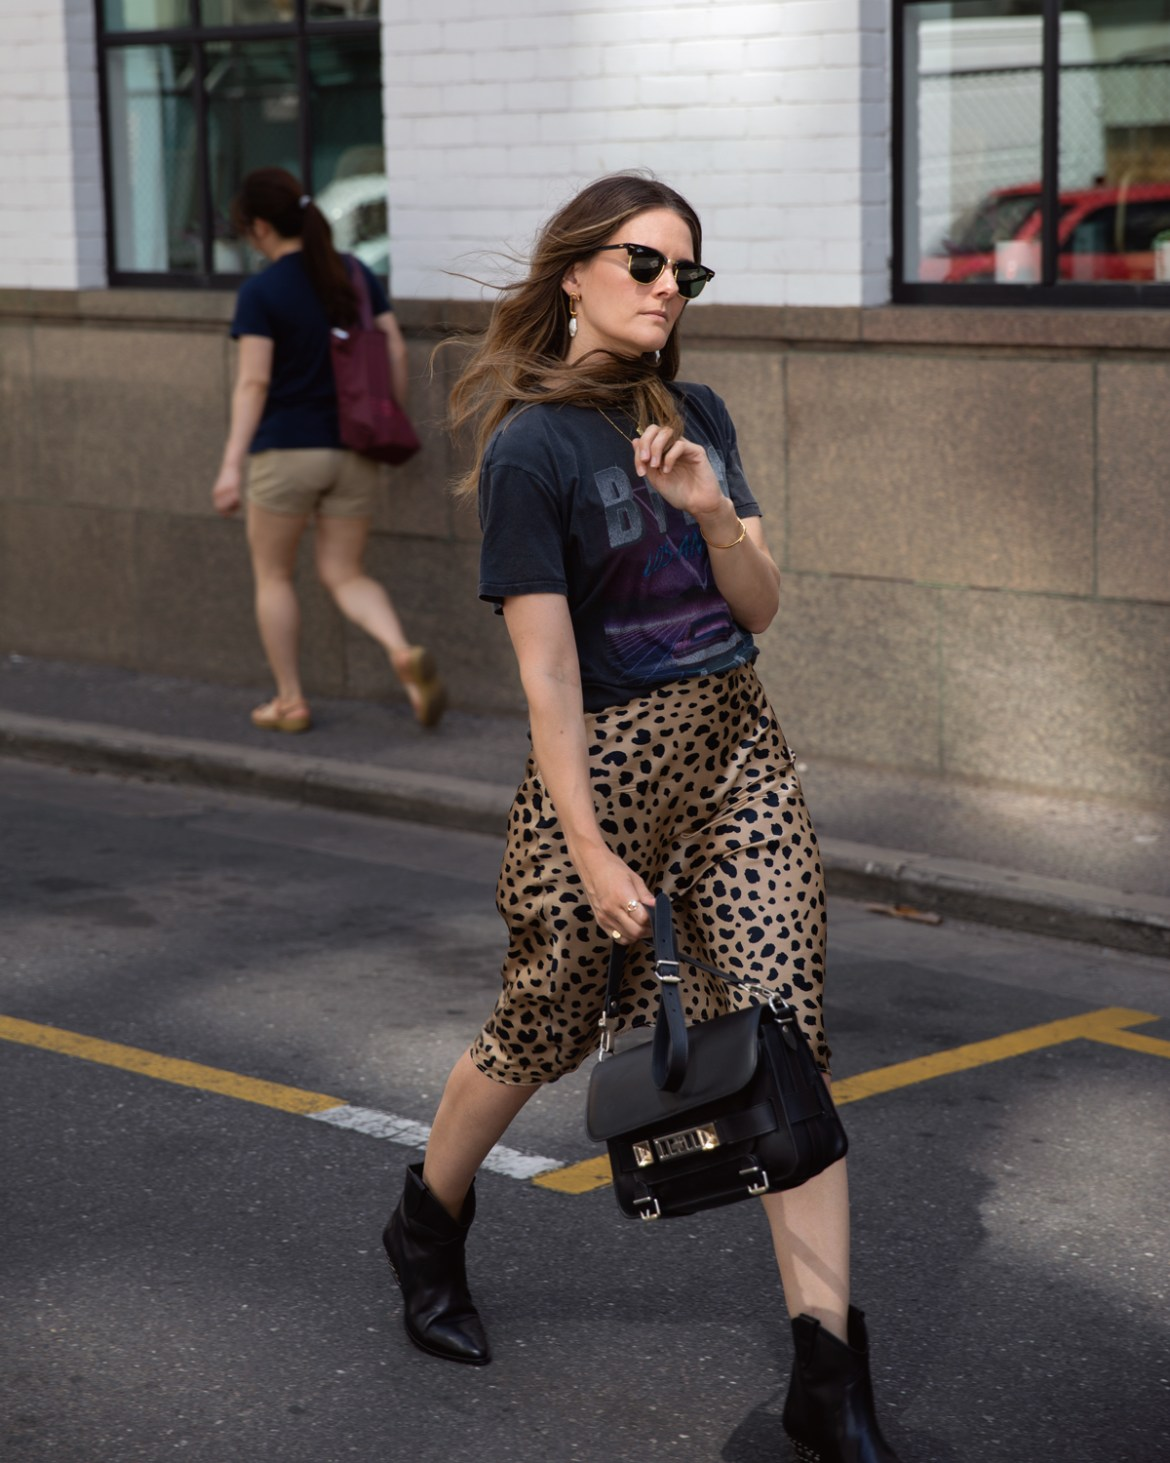 Anine Bing viper vintage tee with Realisation Par Naomi Wild things skirt Isabel Marant boots and Proenza Schouler PS11 bag worn by Jenelle Witty from Australian travel and fashion blog Inspiring Wit